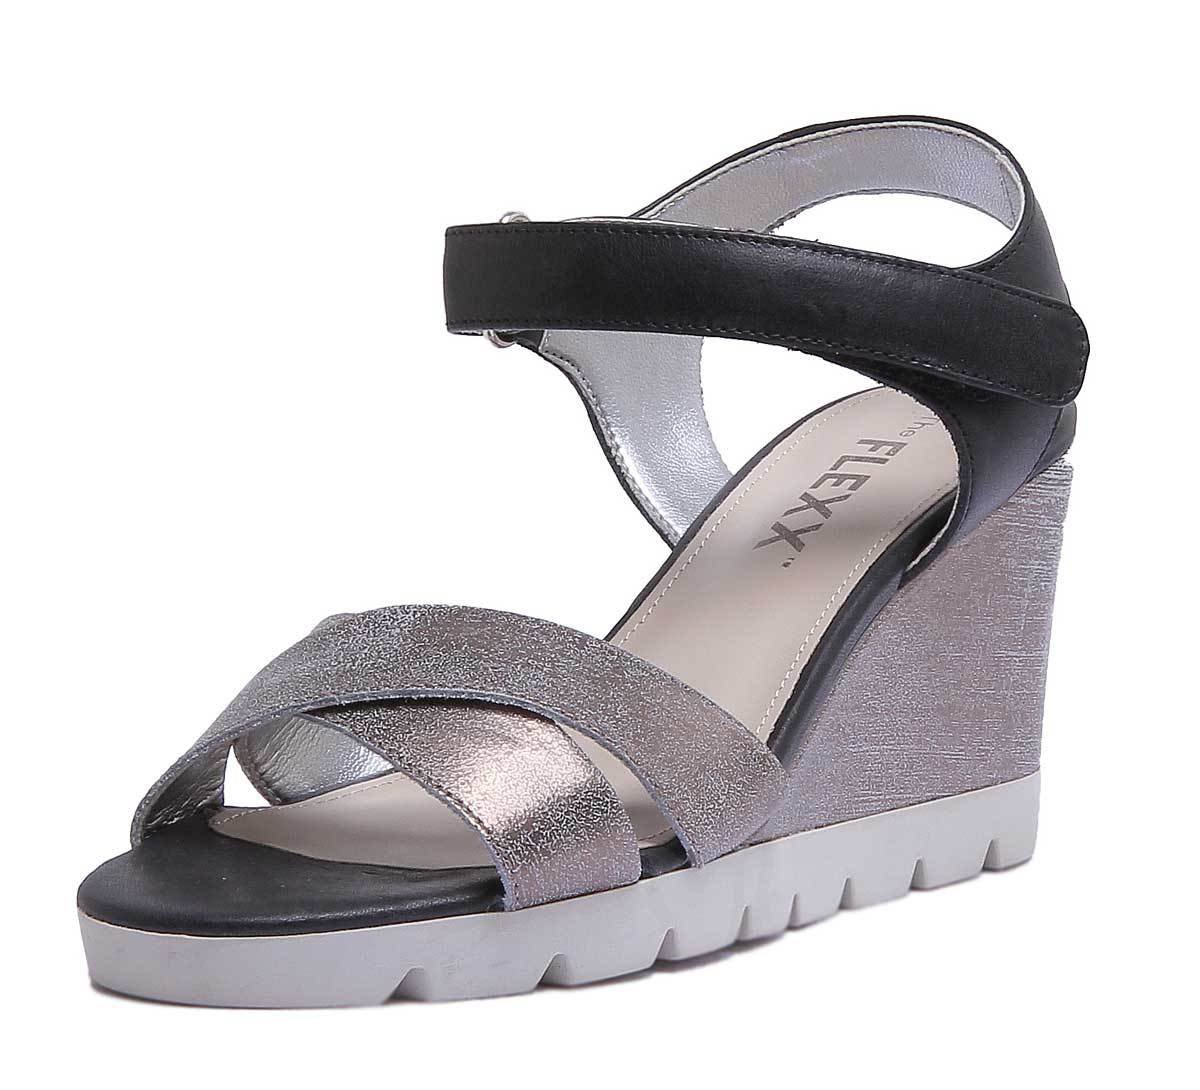 The FLEXX Lot Off Womens Golden Tan Leather Matt Sandal B07DPP5XYP 6 B(M) US|Silver Black